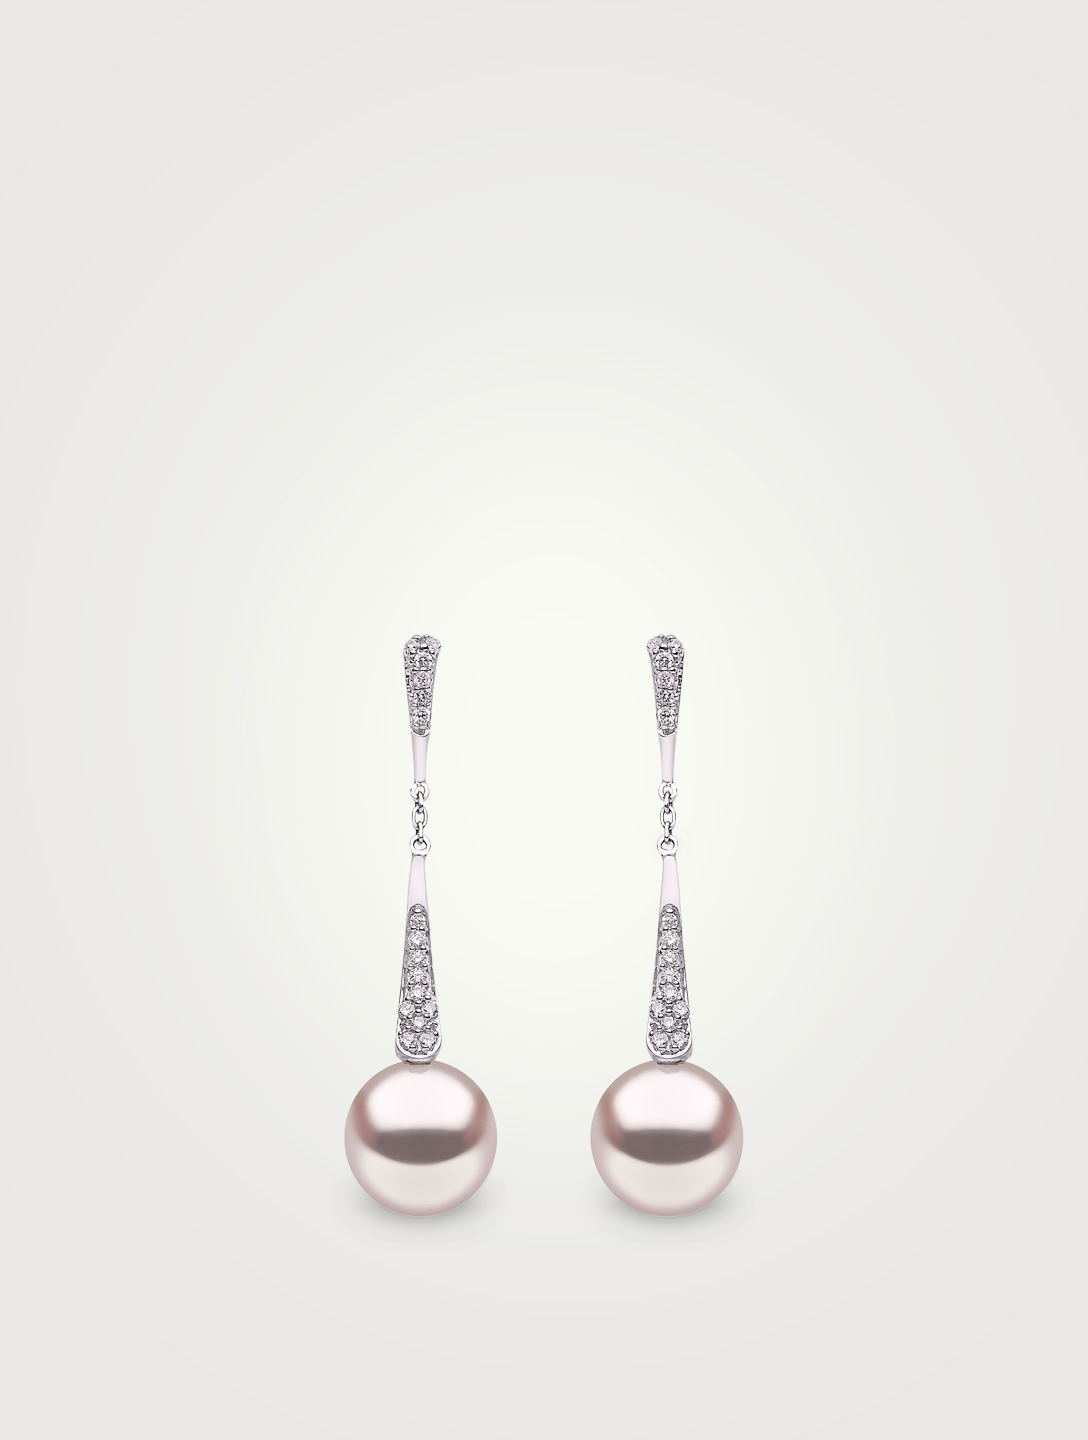 YOKO LONDON 18K White Gold Chain Drop Earrings With Pearls and Diamonds Women's White